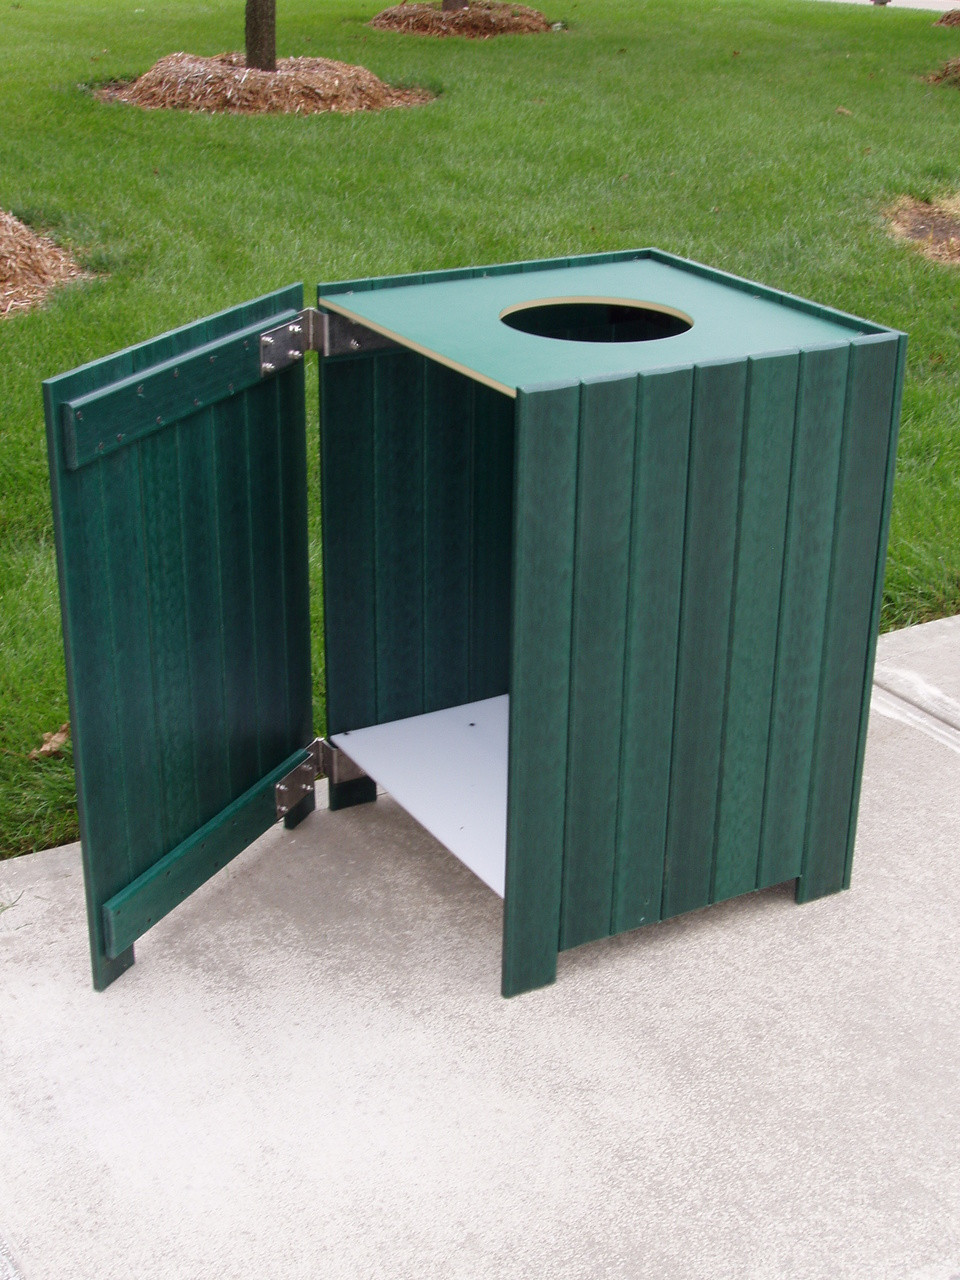 Standard Square Receptacle - 55 gallons